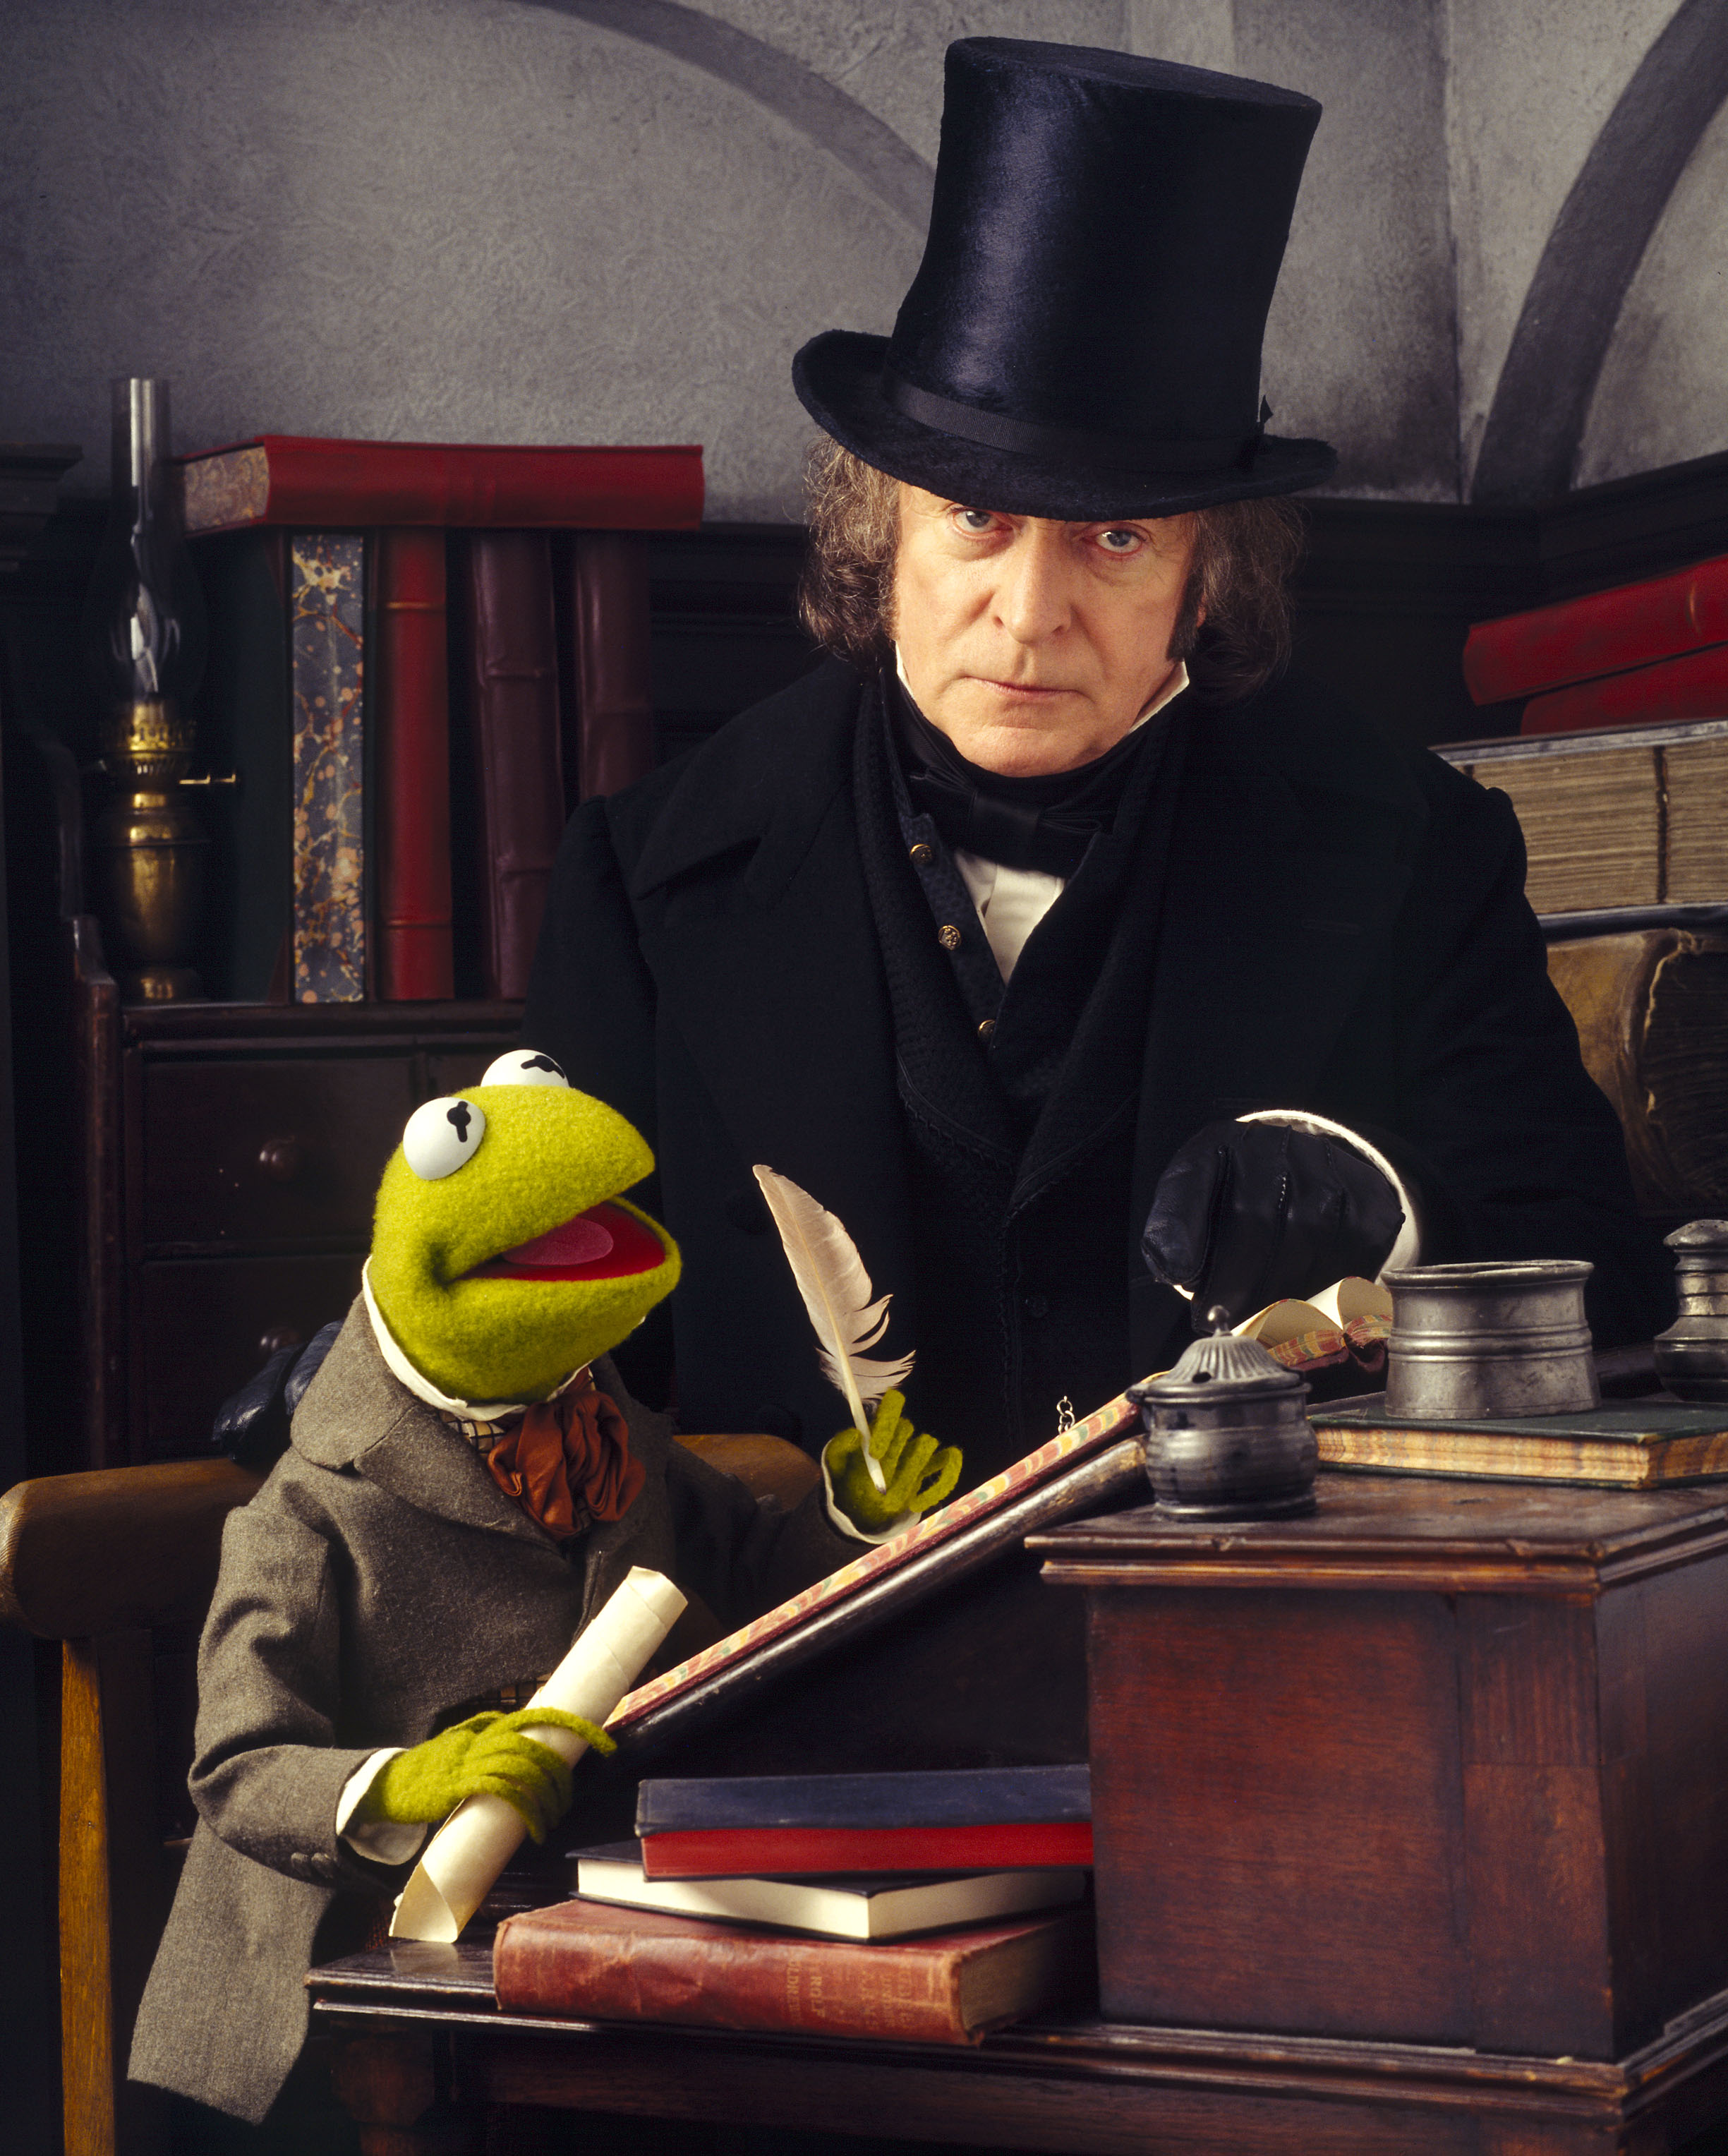 A Much Deeper Level: The Muppet Christmas Carol, Part 1: Bah, Humbug!